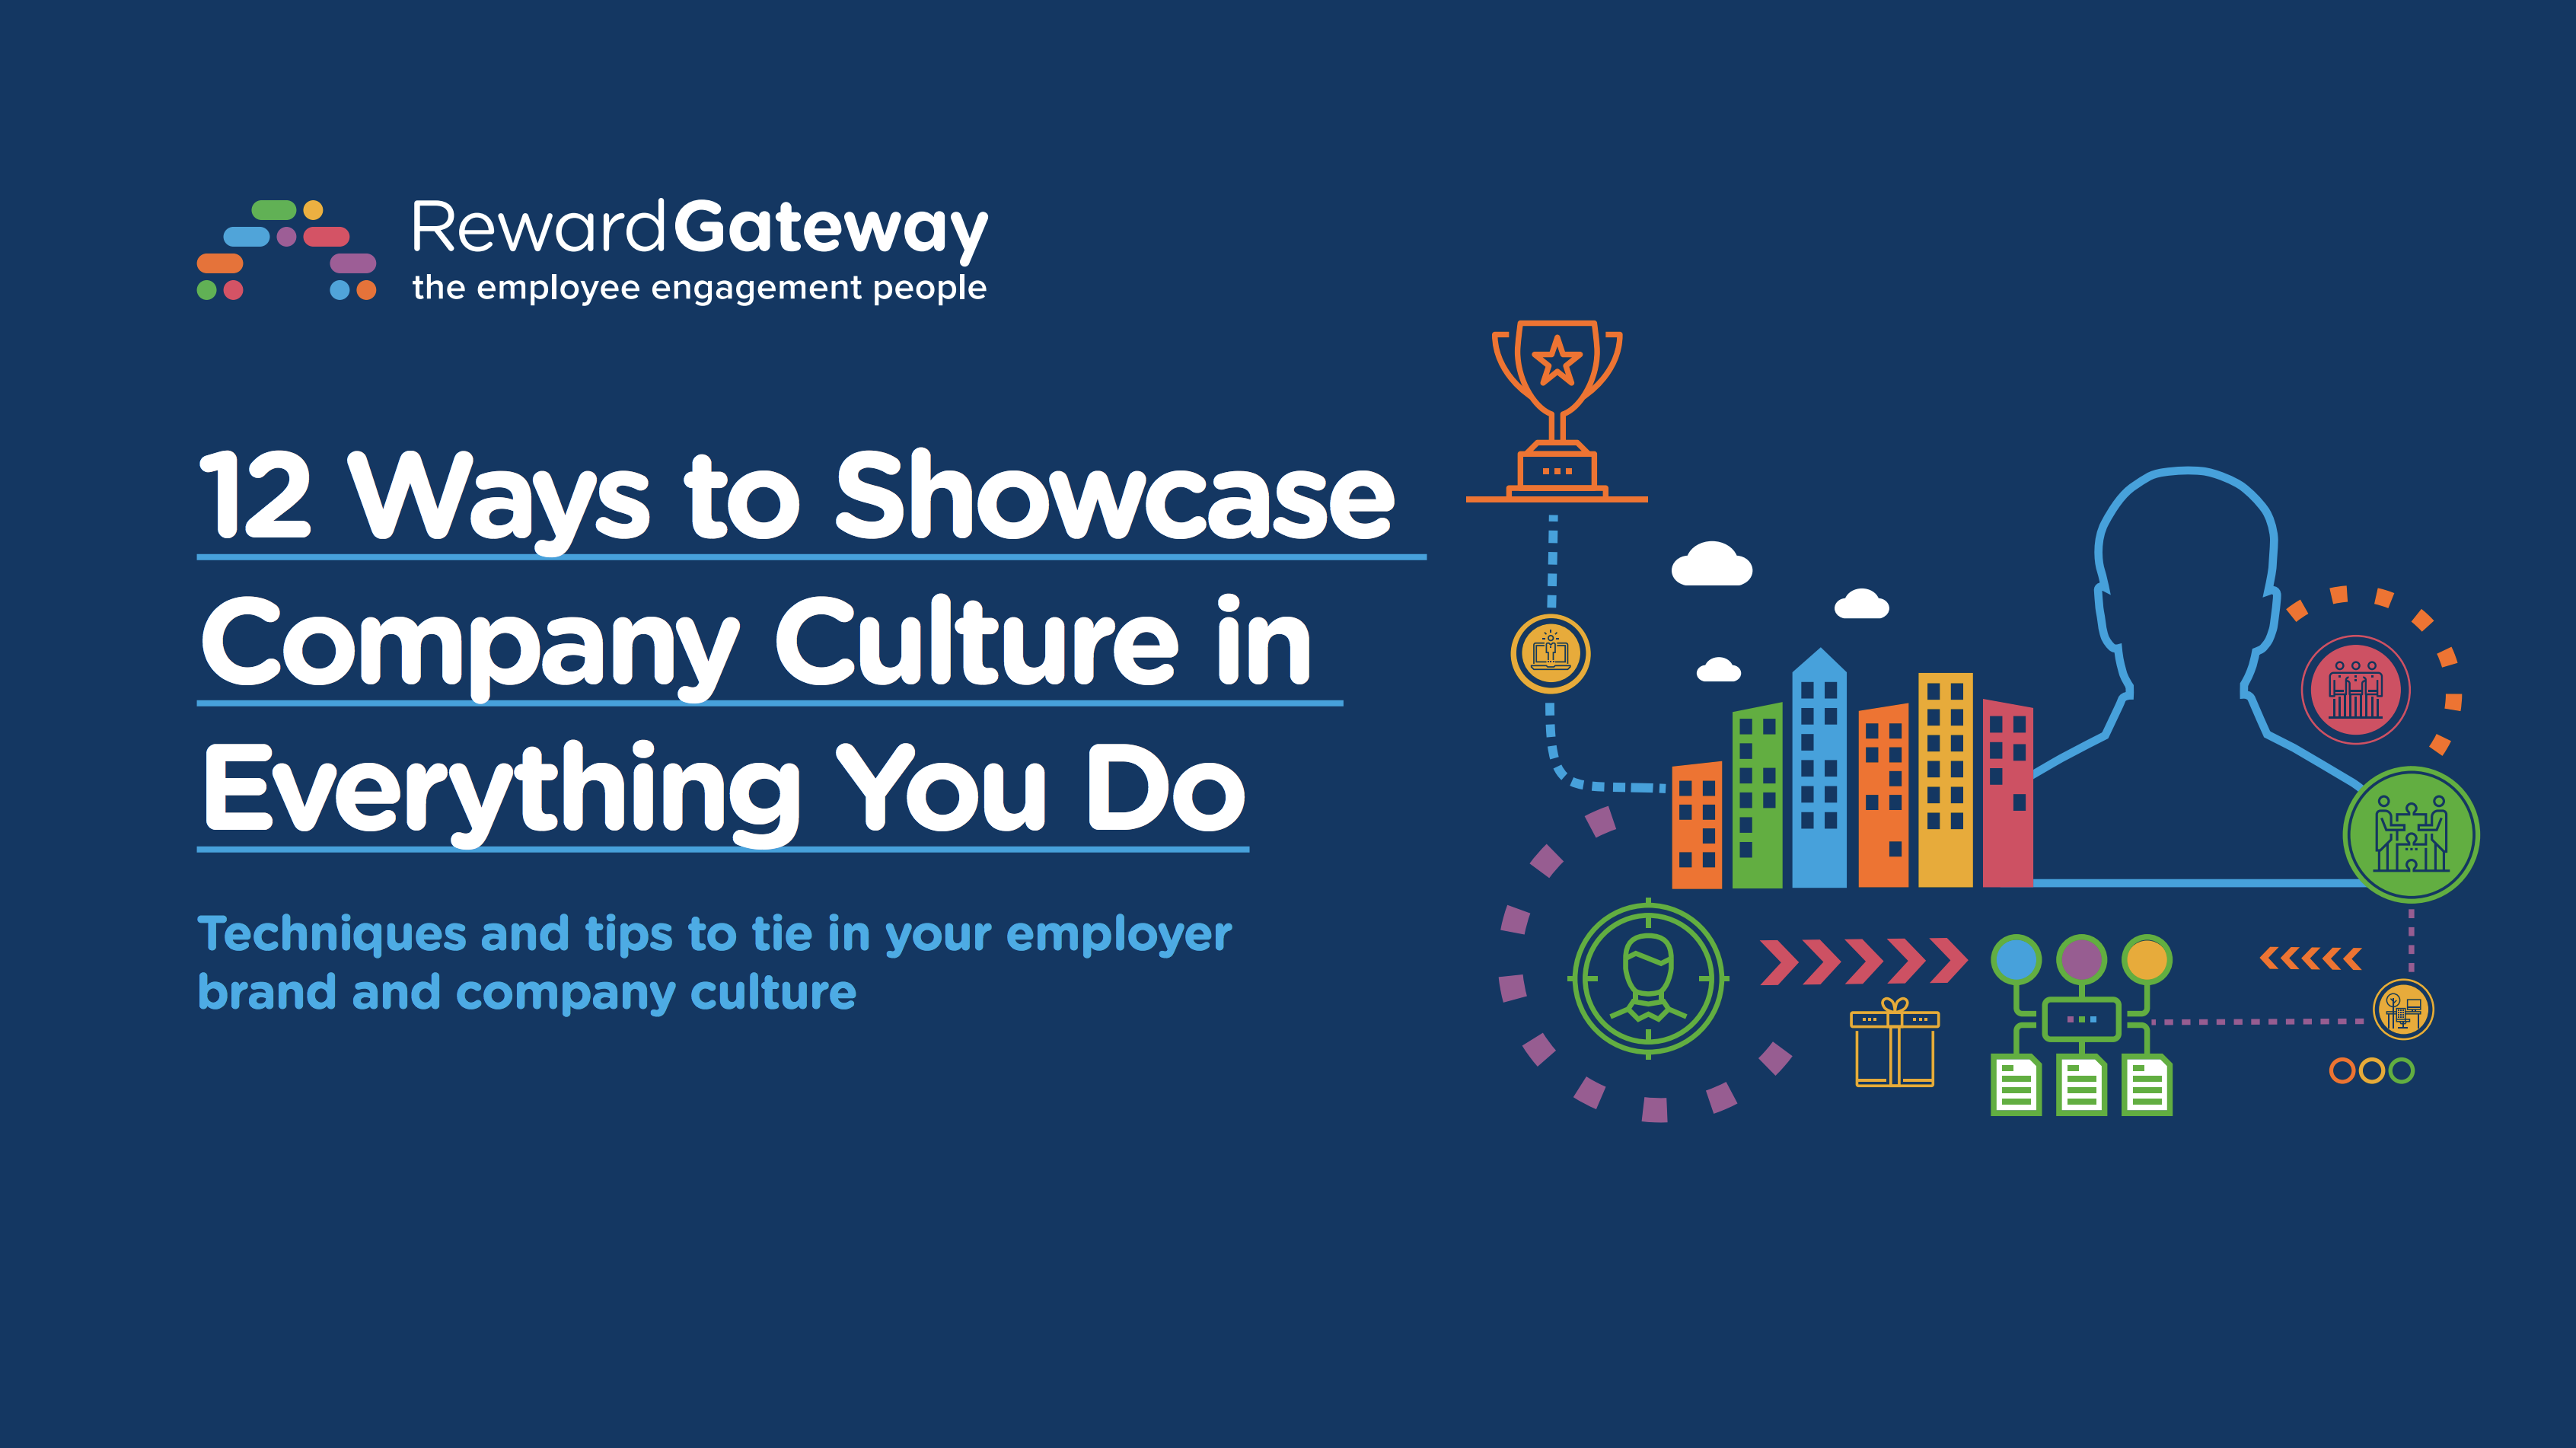 12 Ways to Showcase Company Culture in Everything You Do